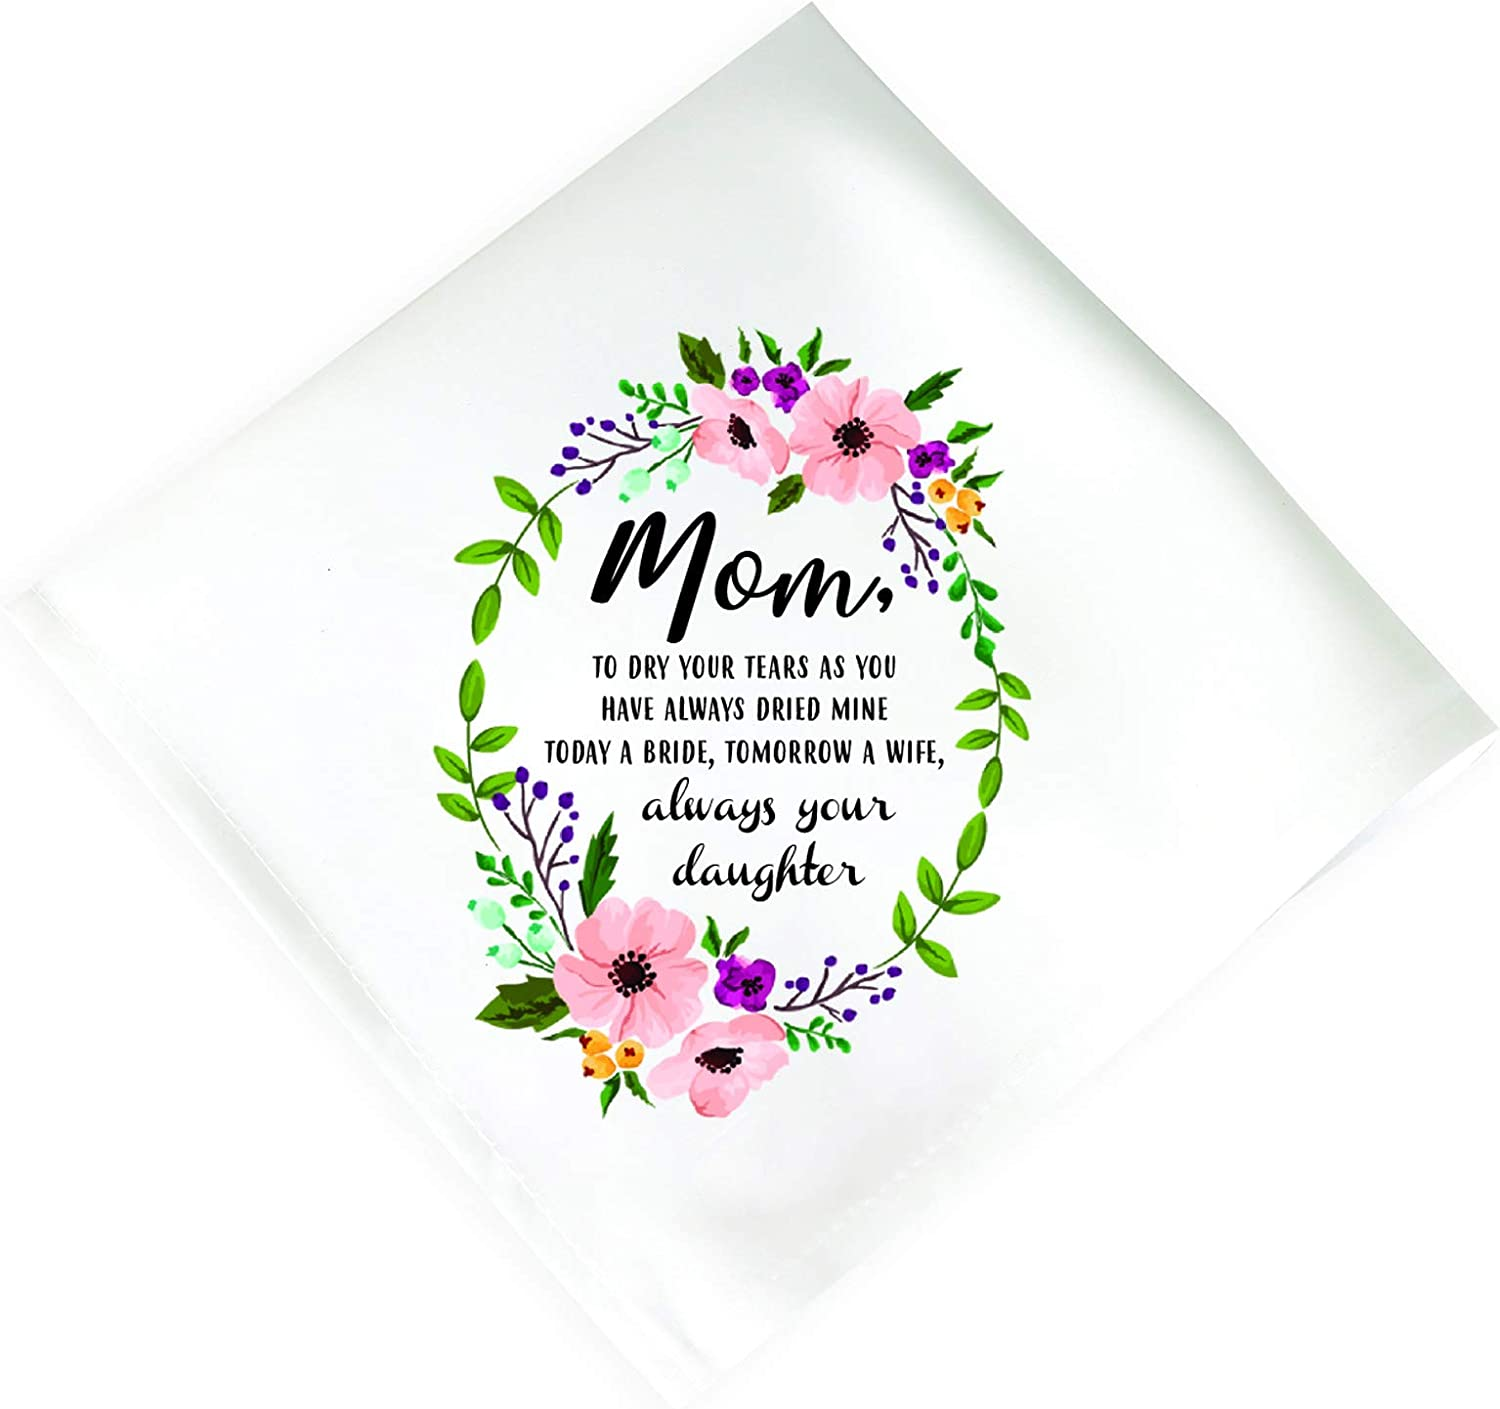 Mother Of The Bride Gift Wedding Handkerchief   Happy Tears Personalized Handkerchief for Women   Wedding Handkerchief For Mom   Mother Gift From Daughter   Thank You Mother In Law Gift From Groom